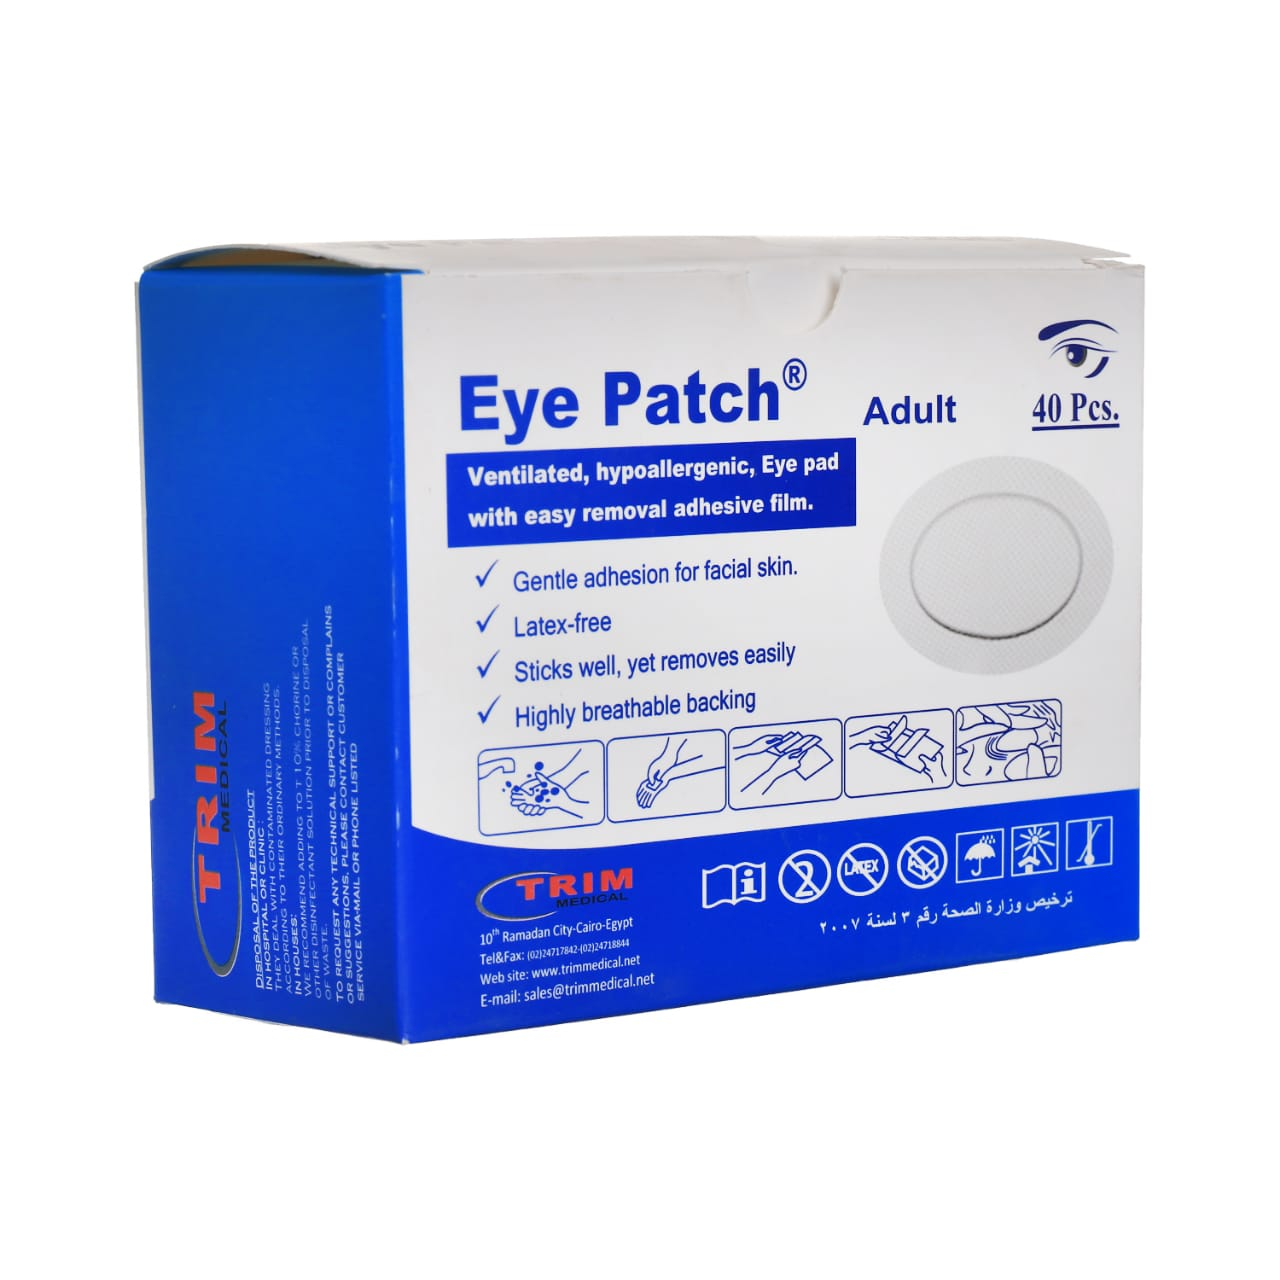 TRIM Eye patch for adult